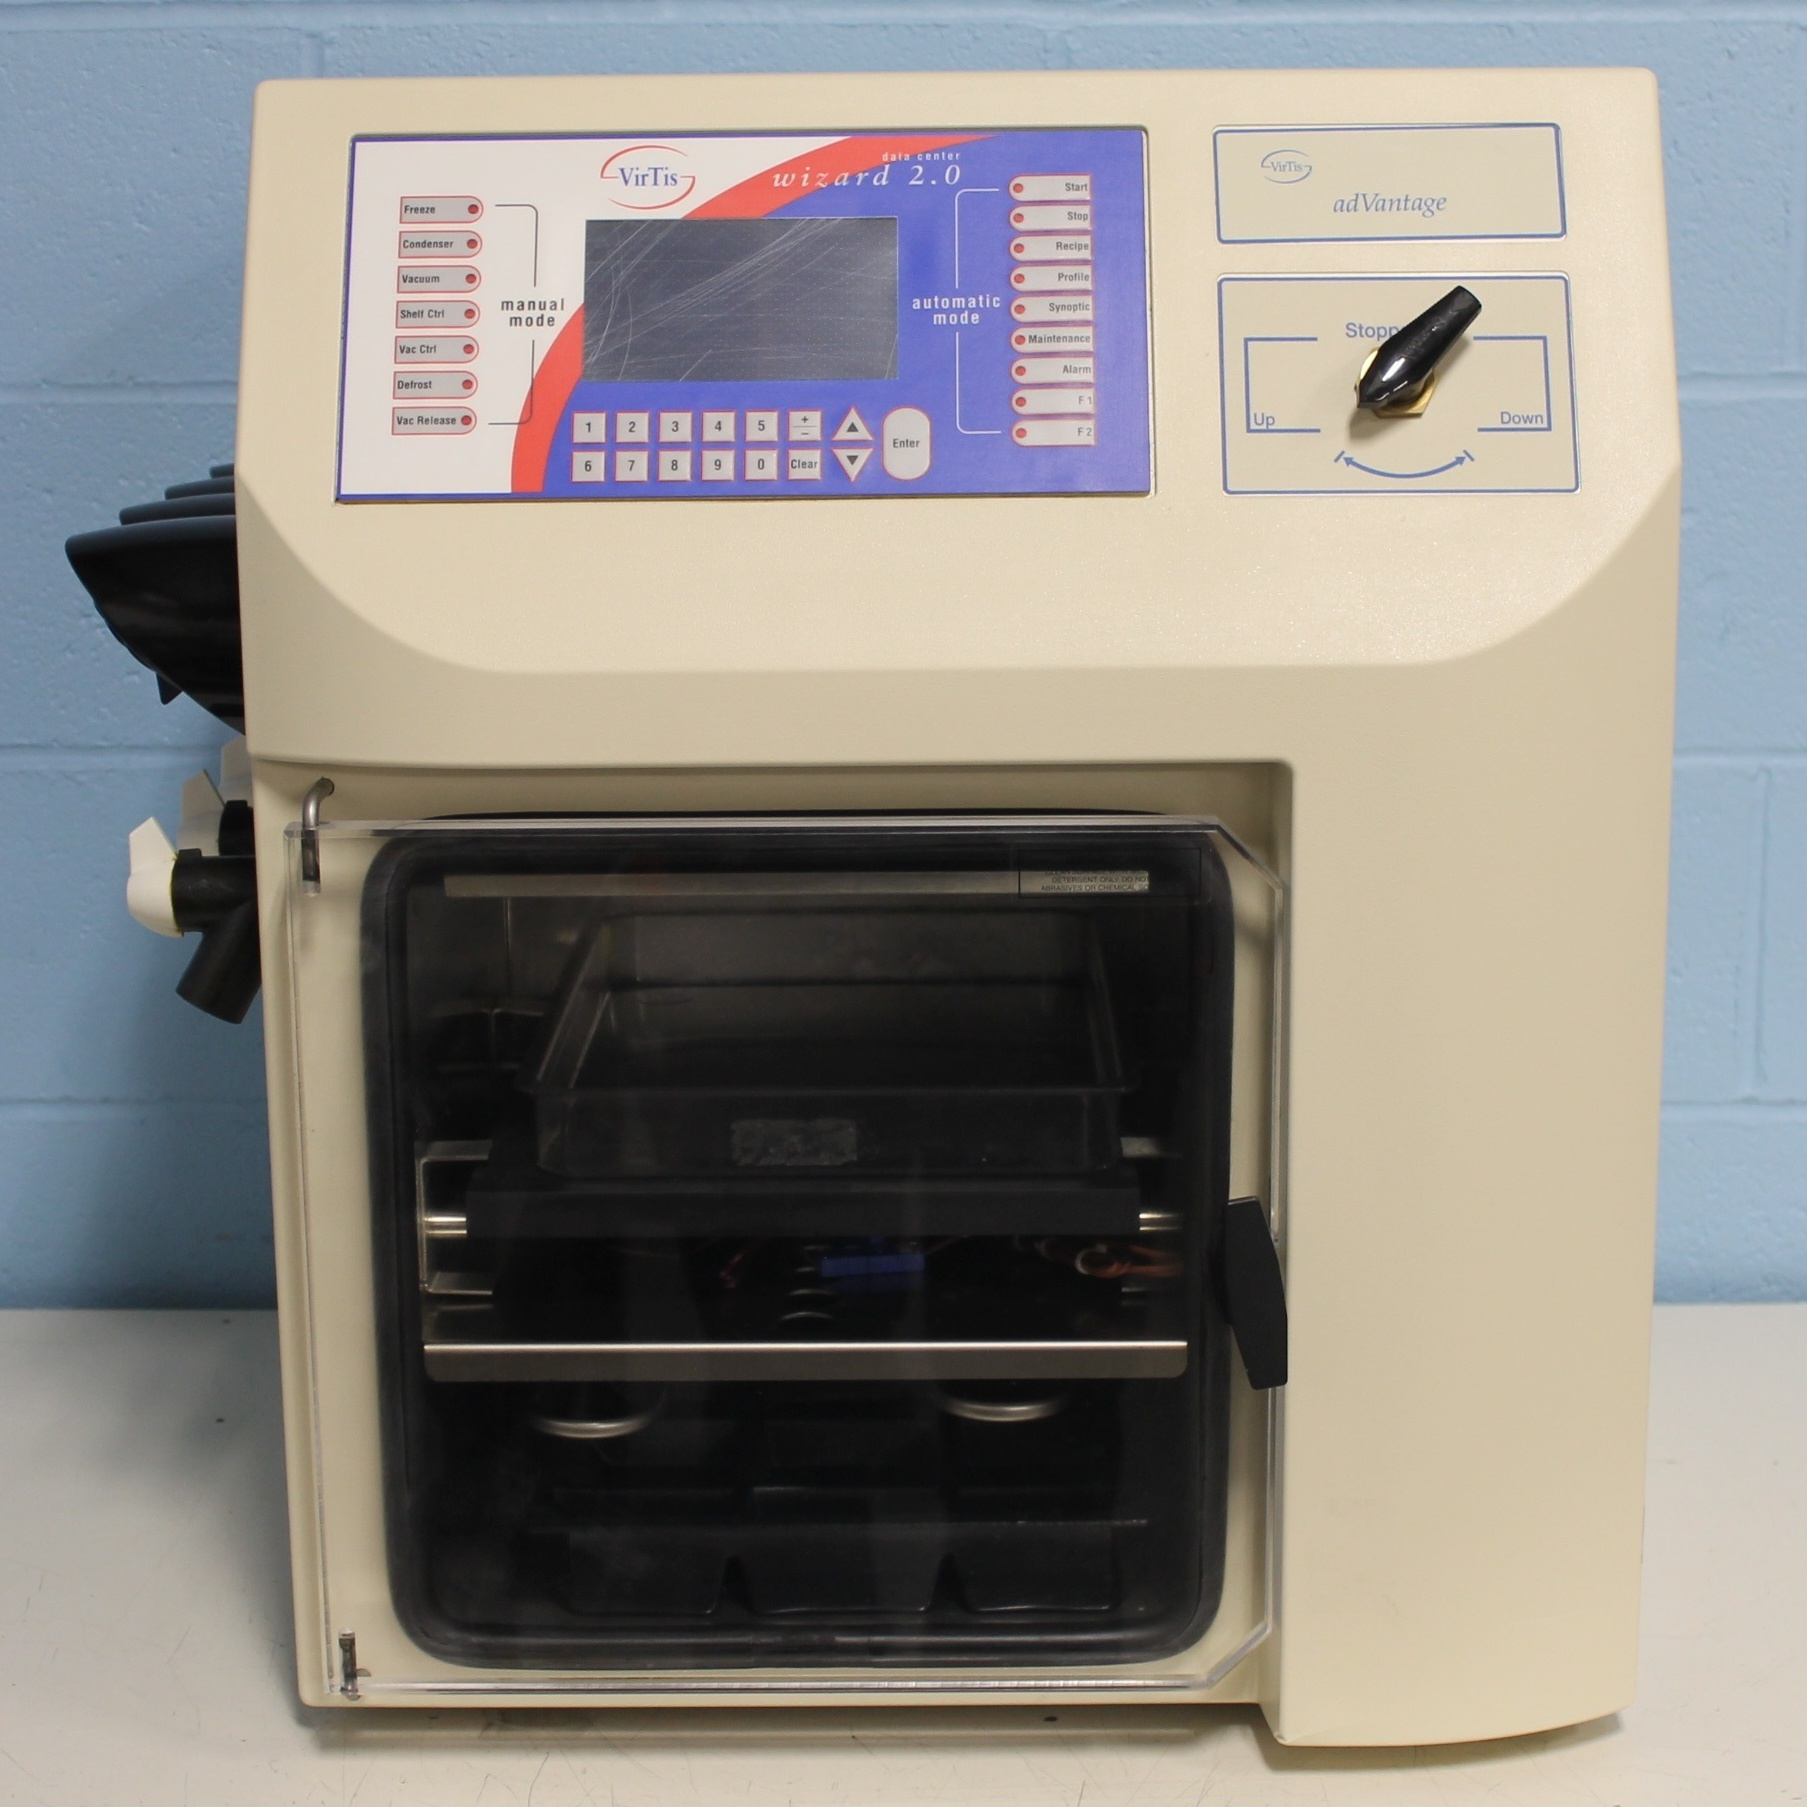 AdVantage Plus BenchTop Freeze Dryer Model XL-70 Name